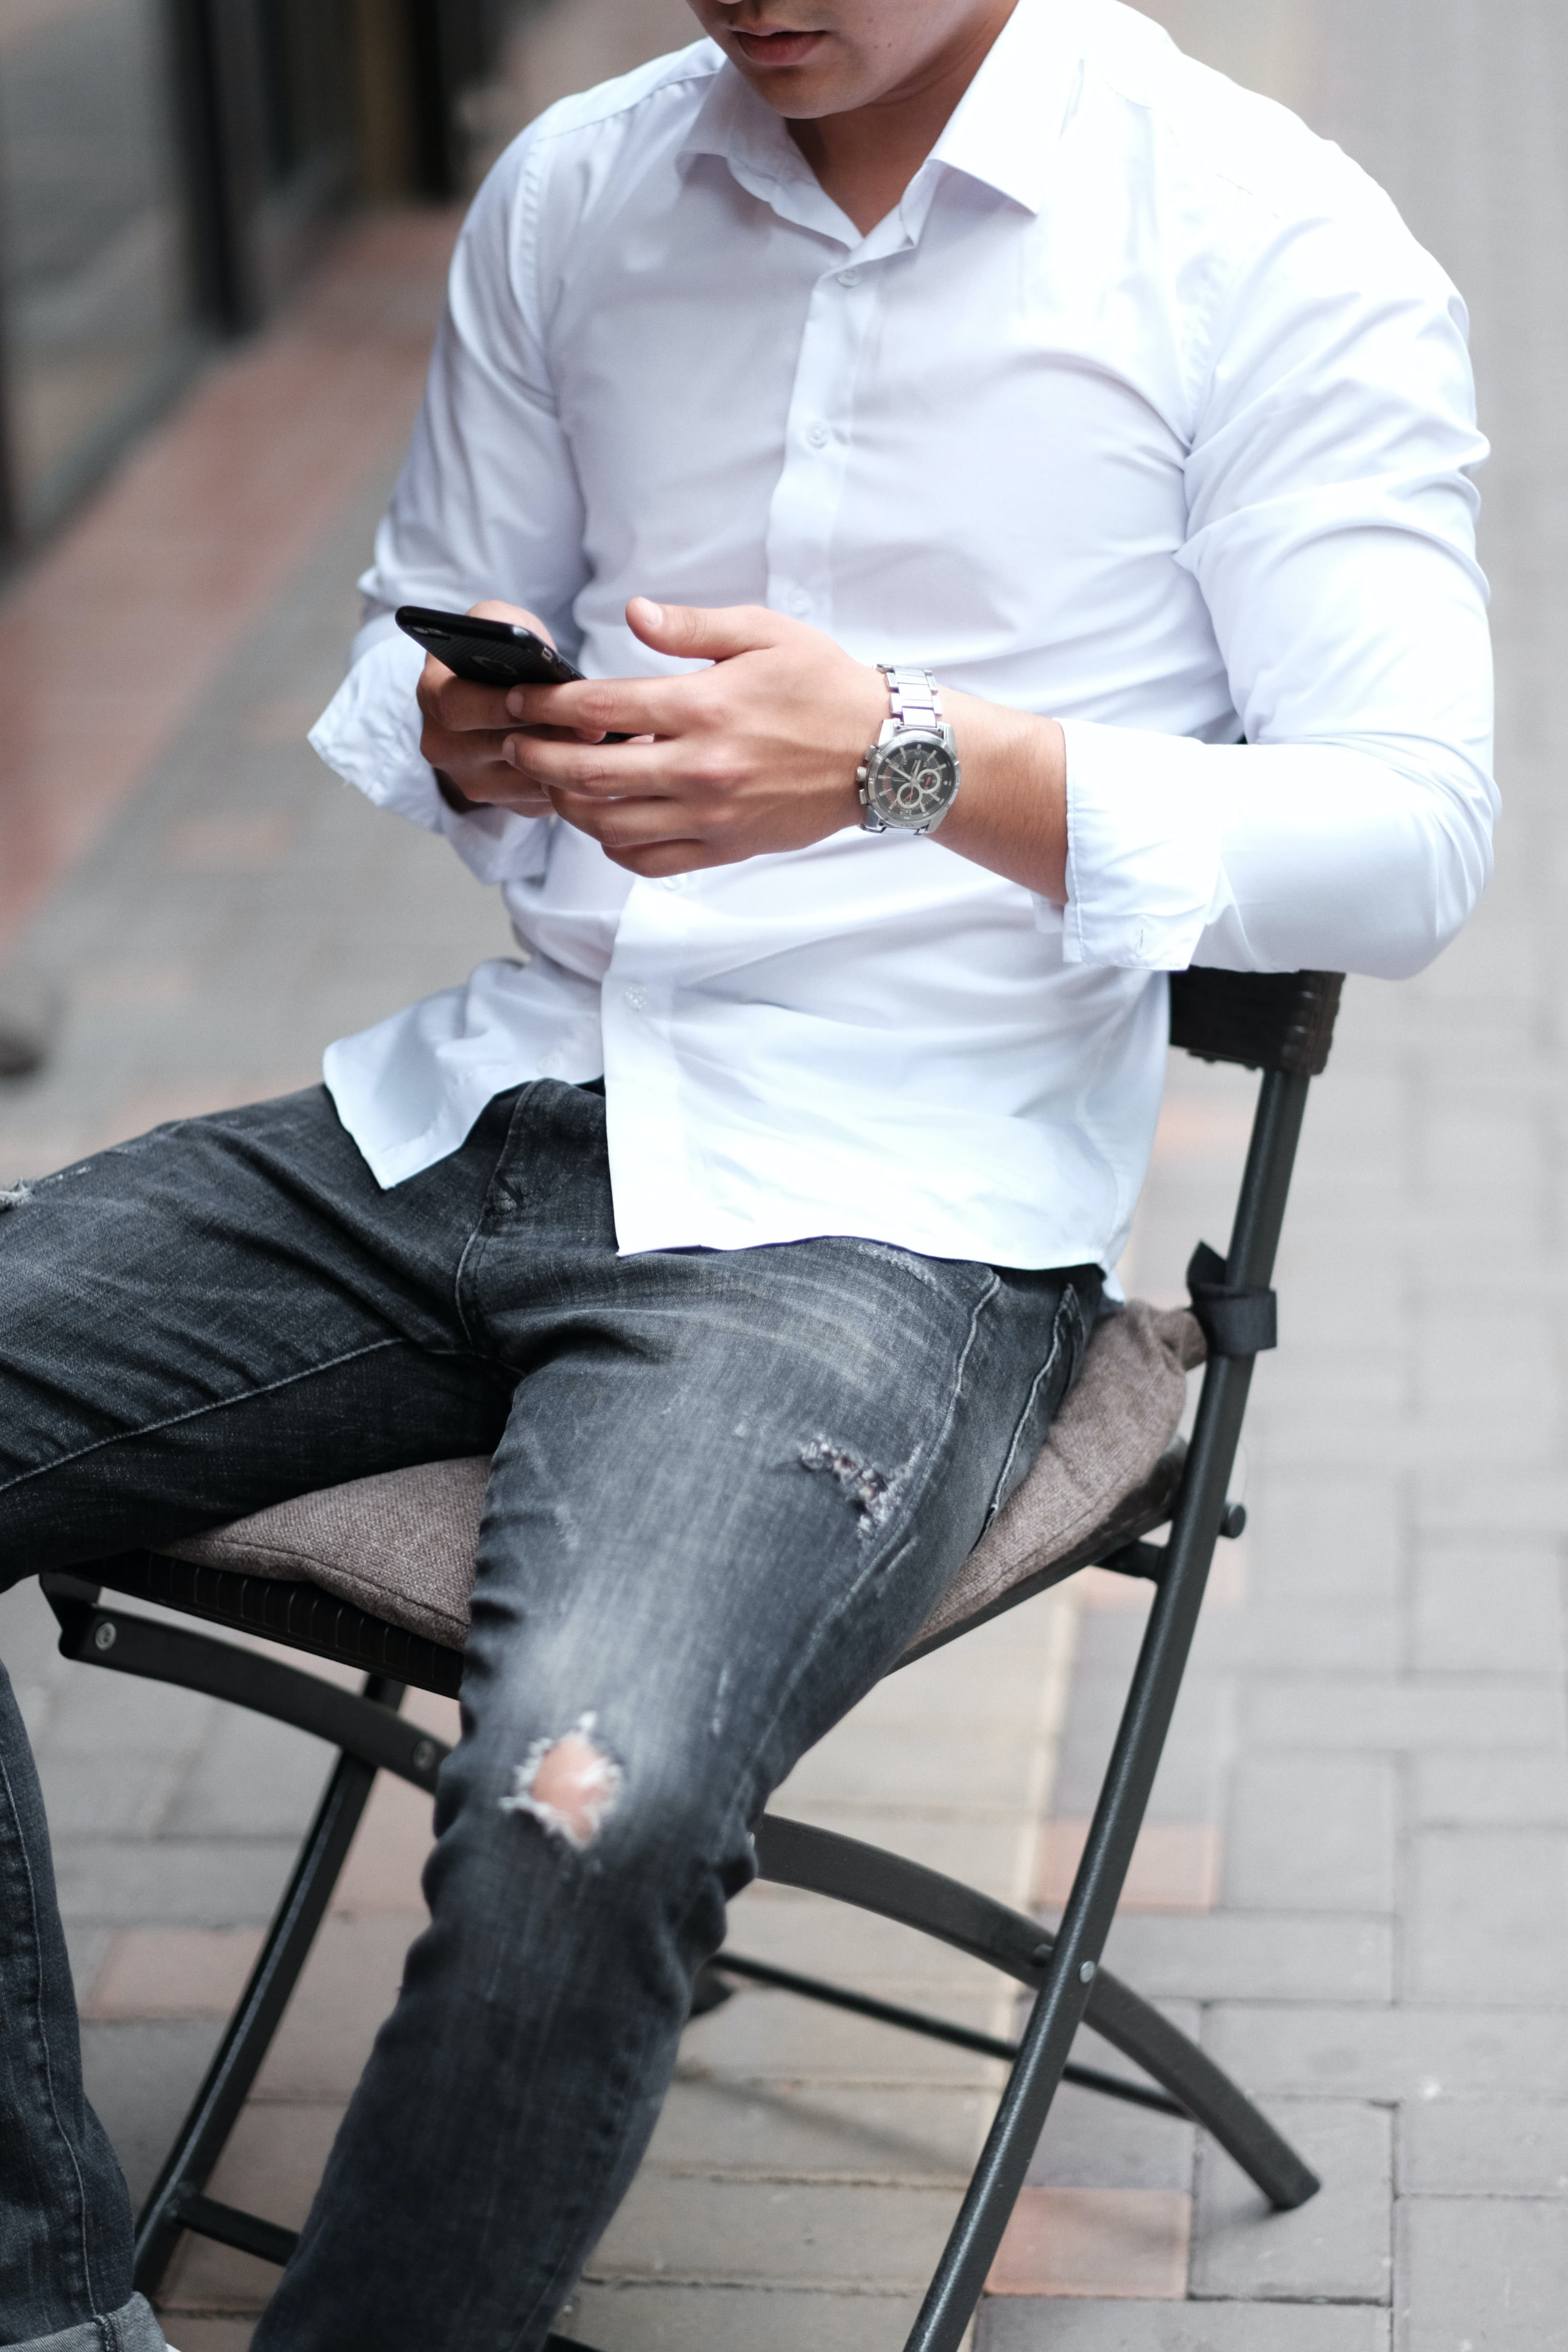 man sitting on chair while holding smartphone